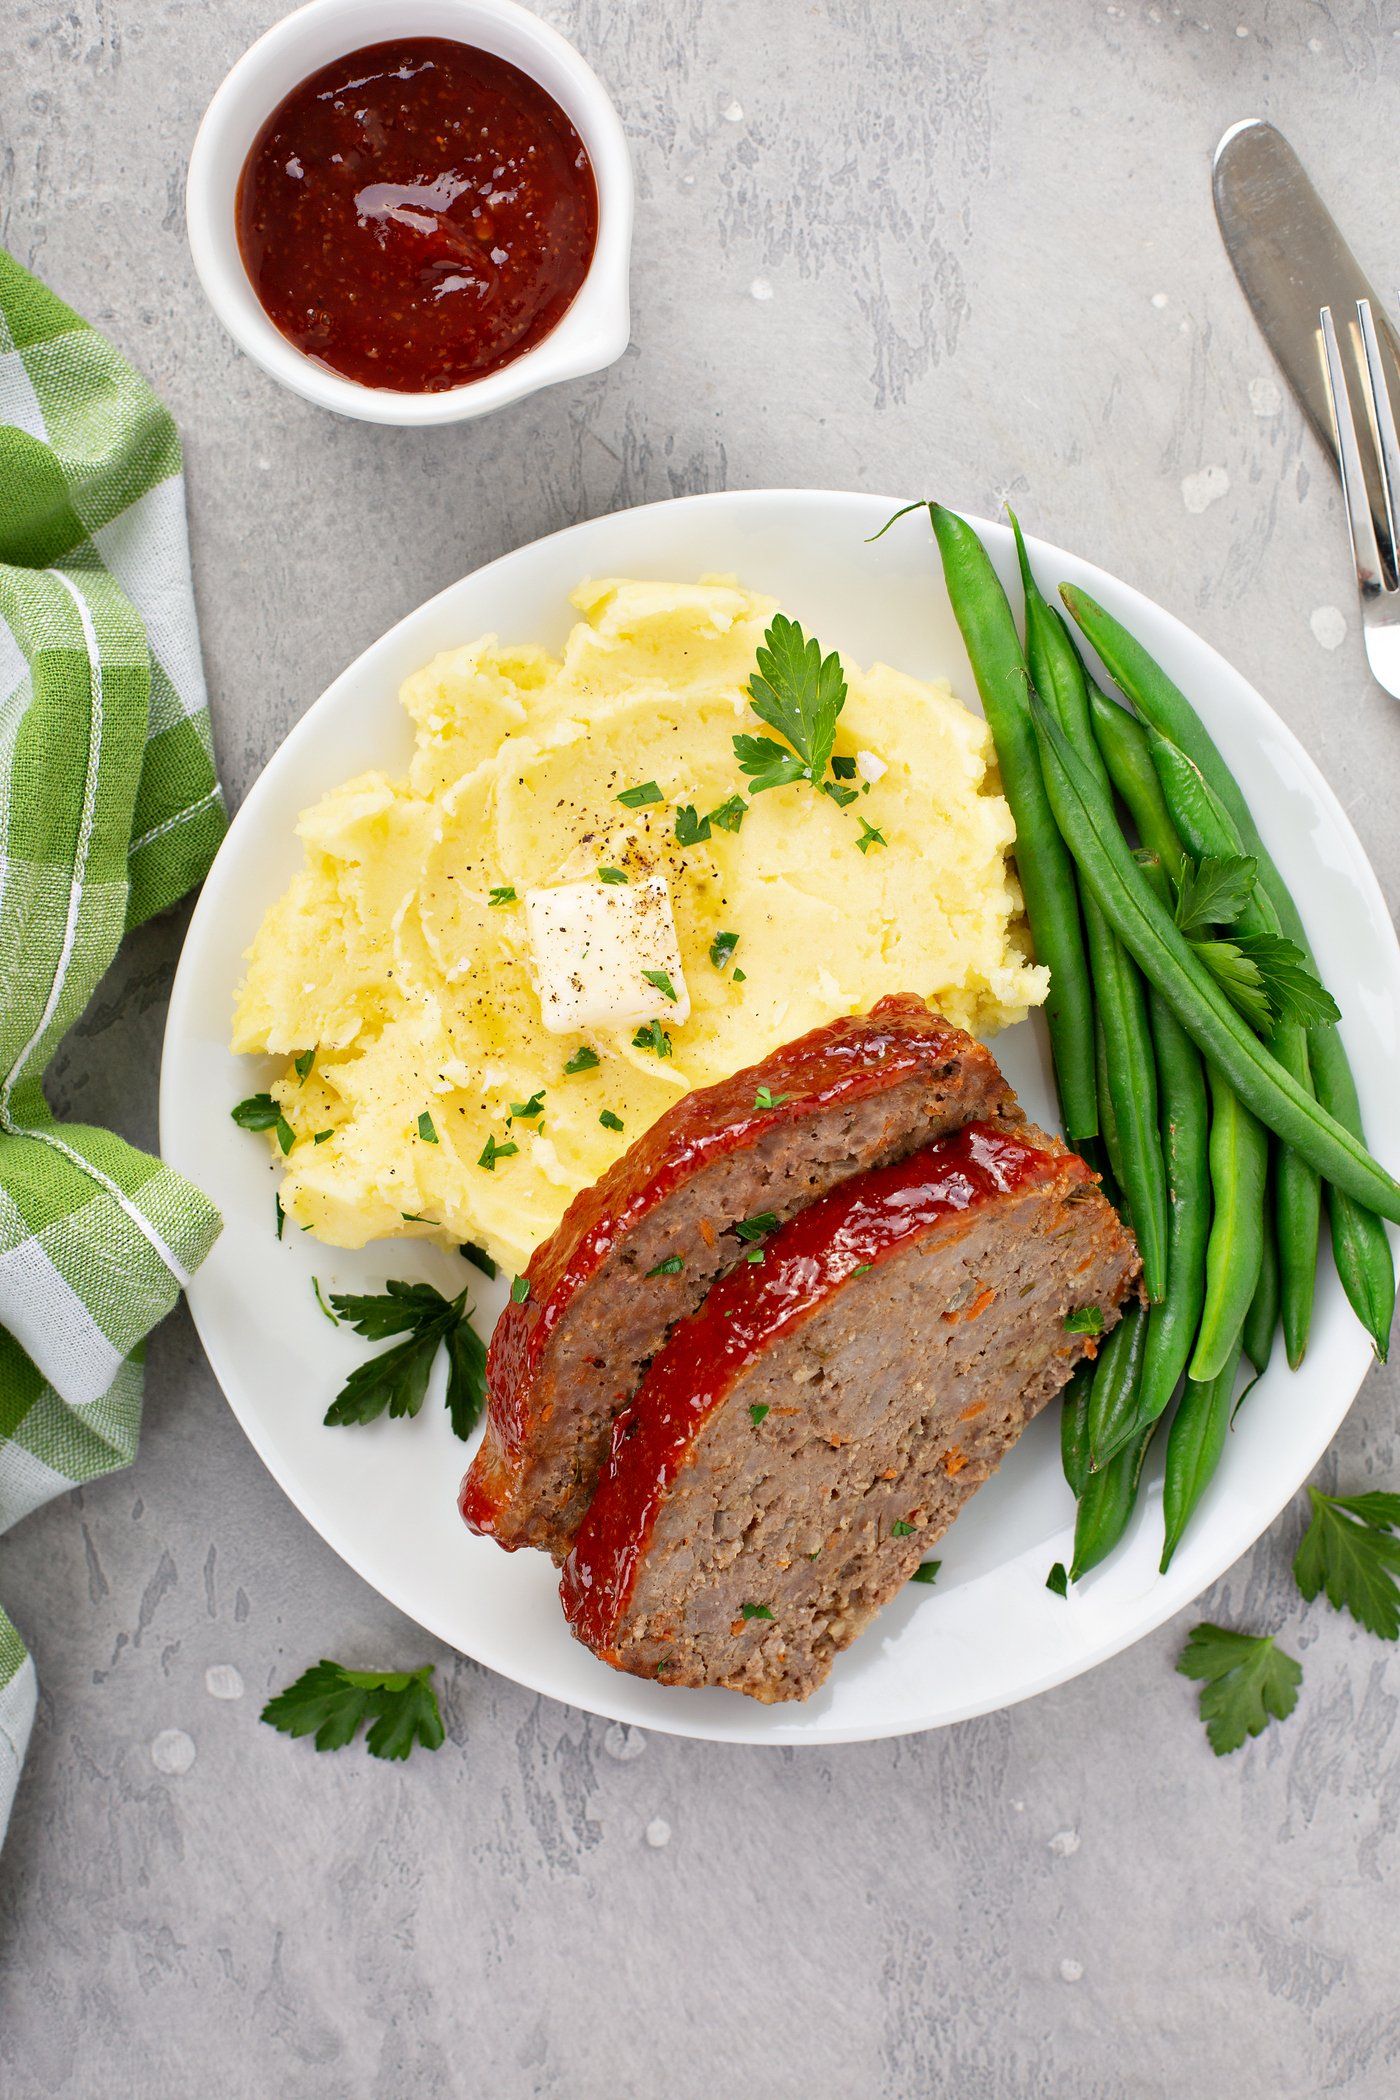 A white dinner plate containing two slices of meatloaf, green beans, mashed potatoes topped with butter, and sprinkled with parsley leaves. there is a green plaid napkin beside the plate and a small container of glaze in the background.